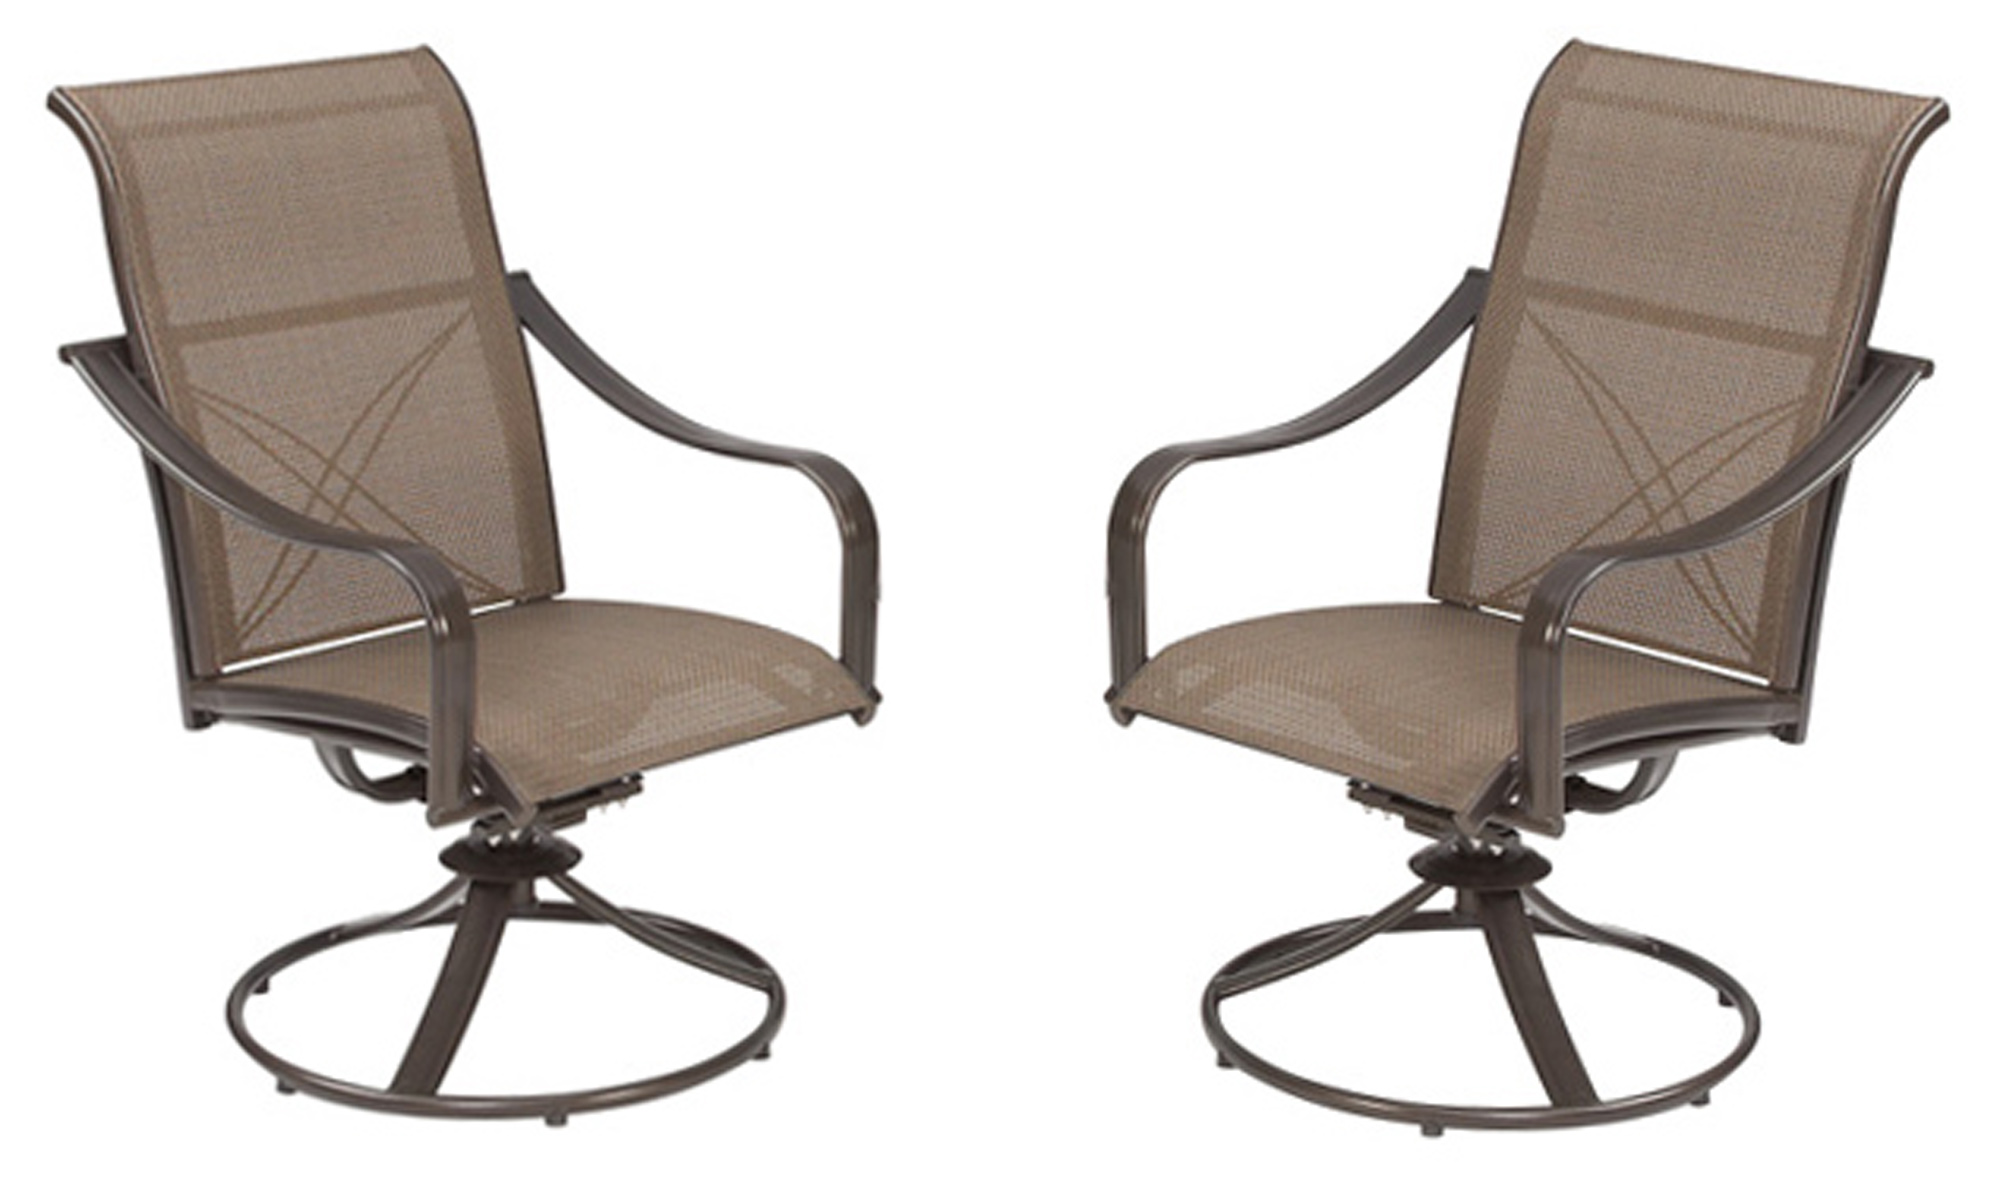 patio chairs sold at home depot